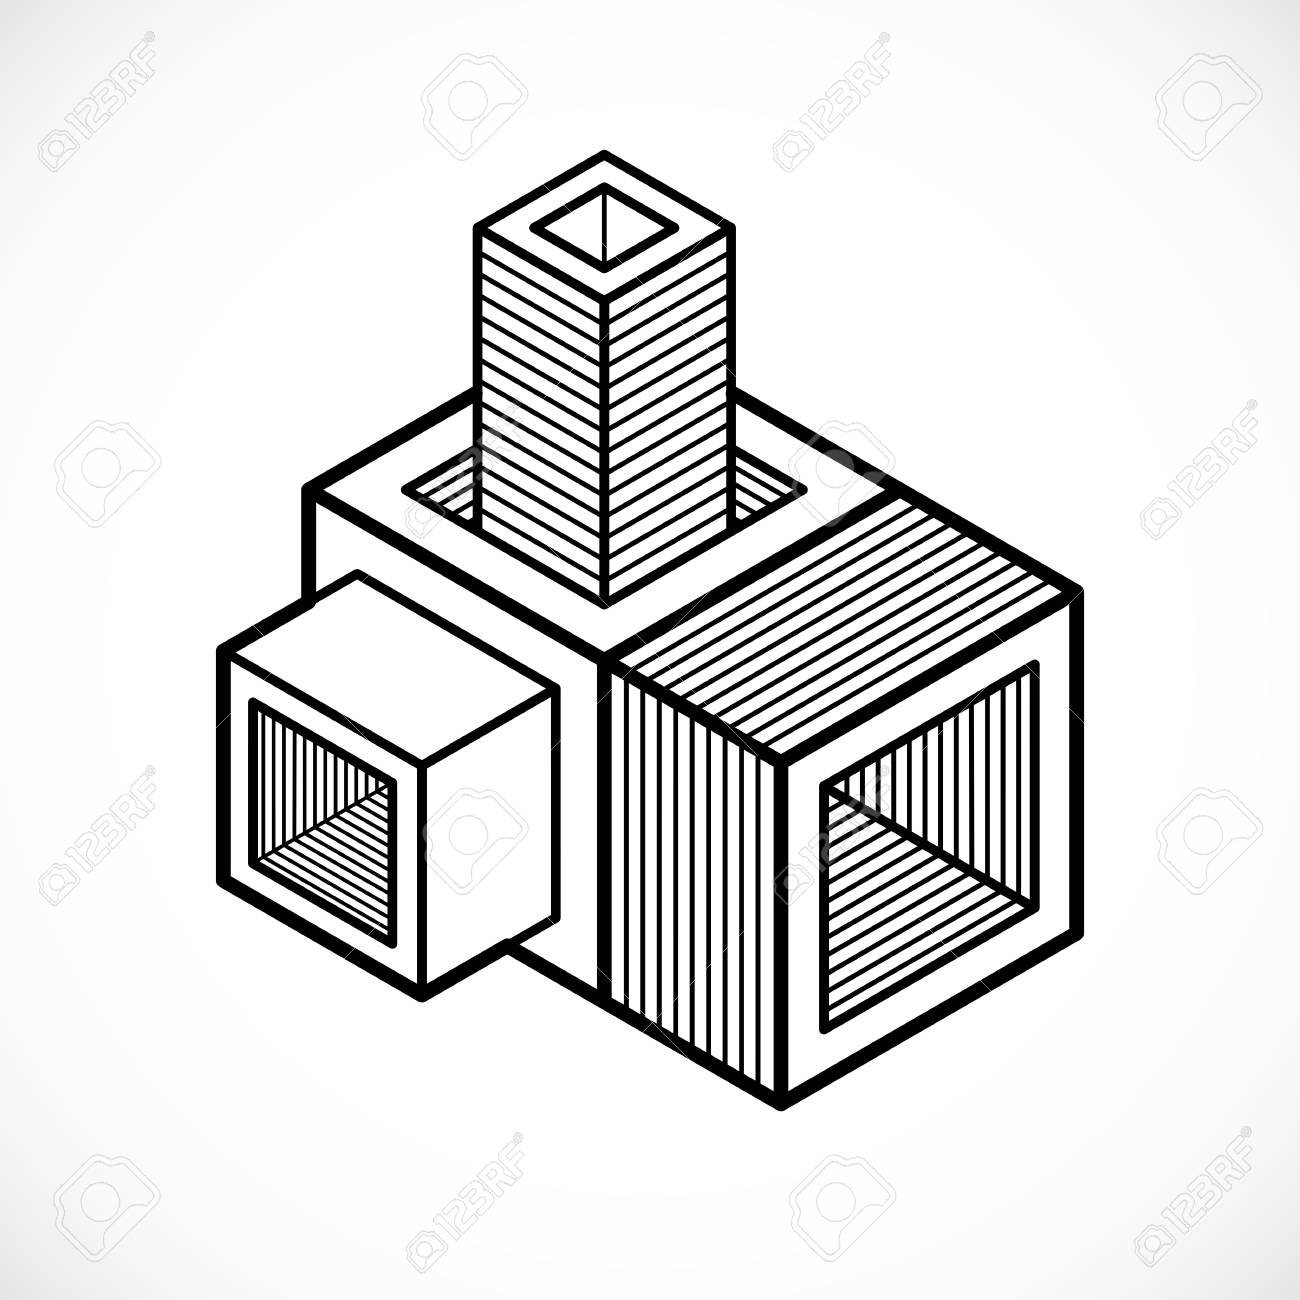 3d Cube Drawing At Getdrawings